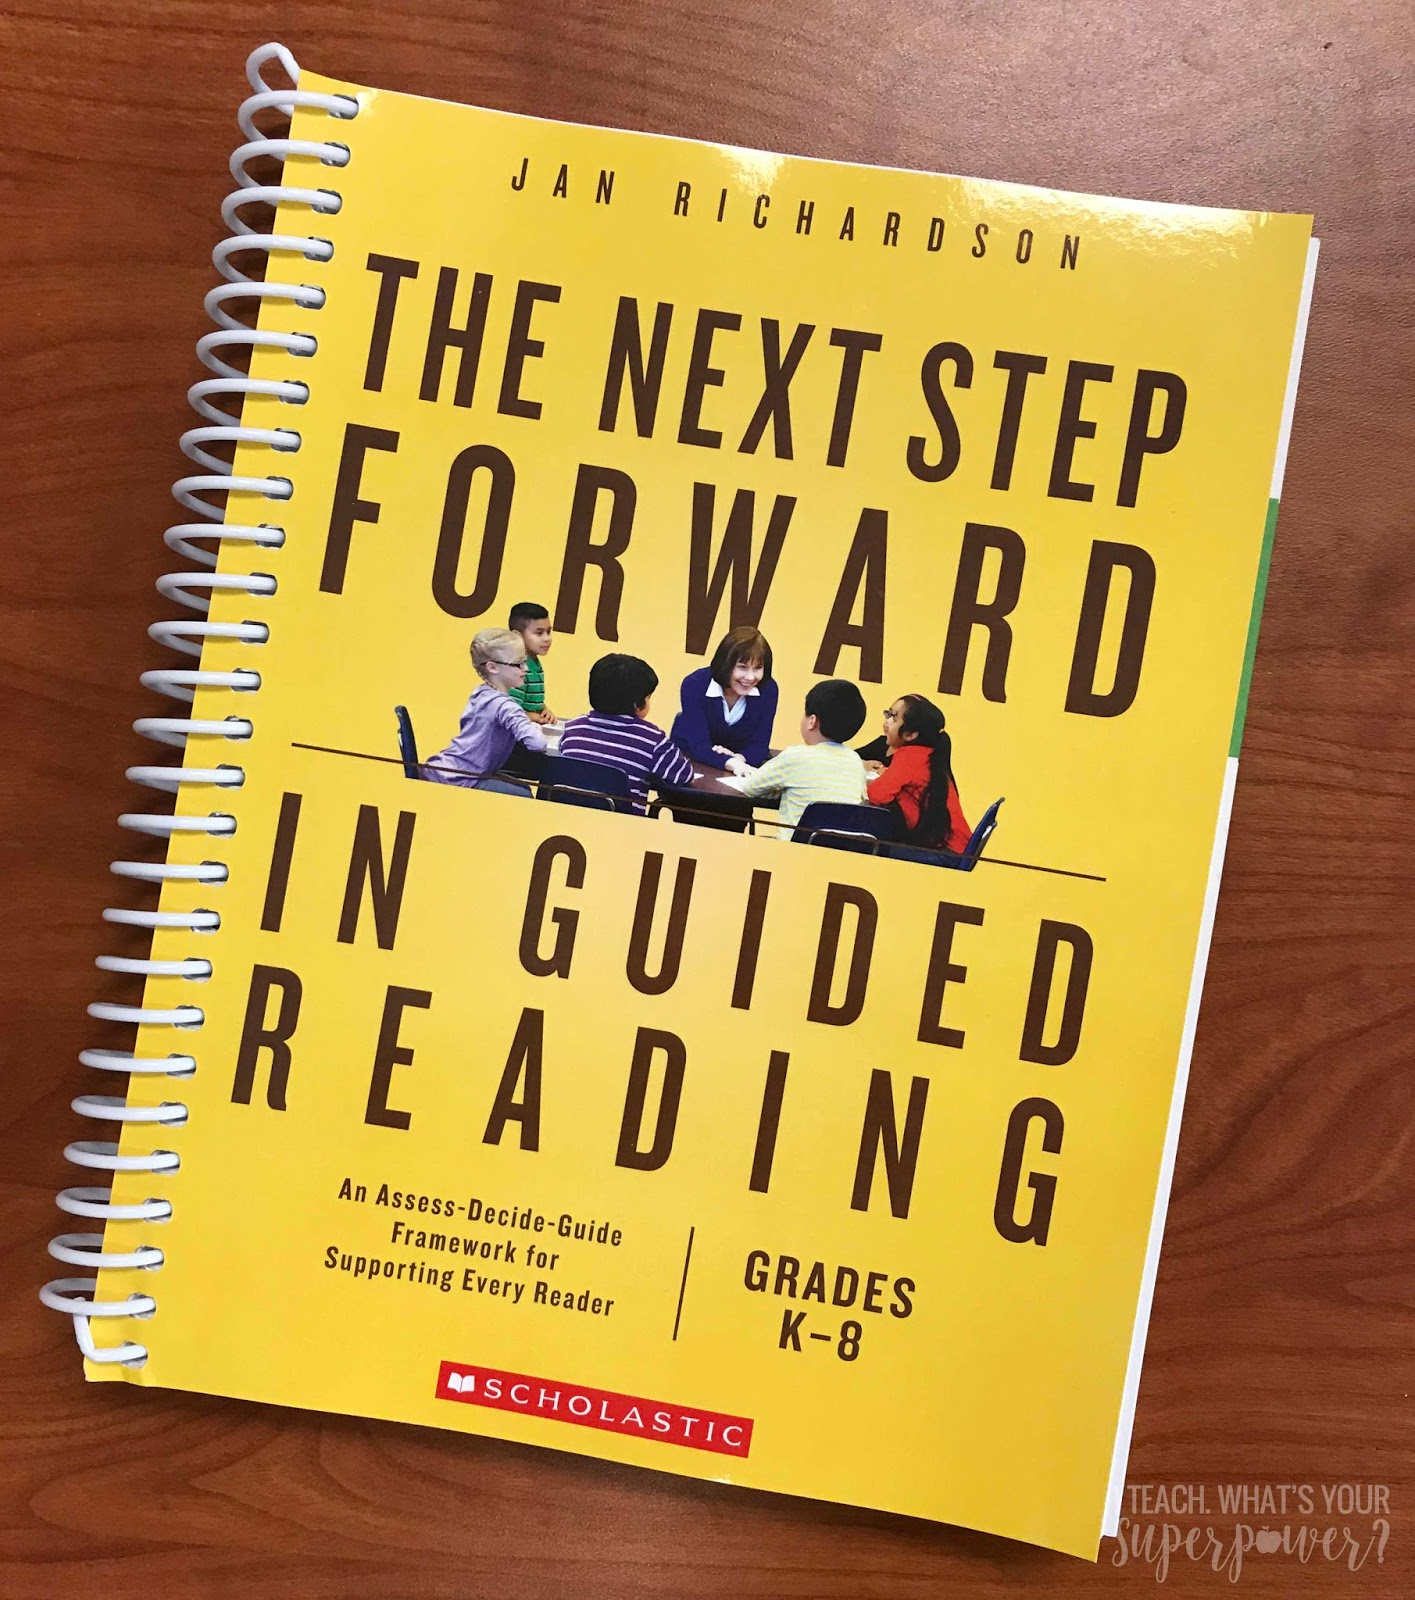 The Next Step Forward in Guided Reading is a must!! If you're not sure how to teach guided reading, this book will get you there.